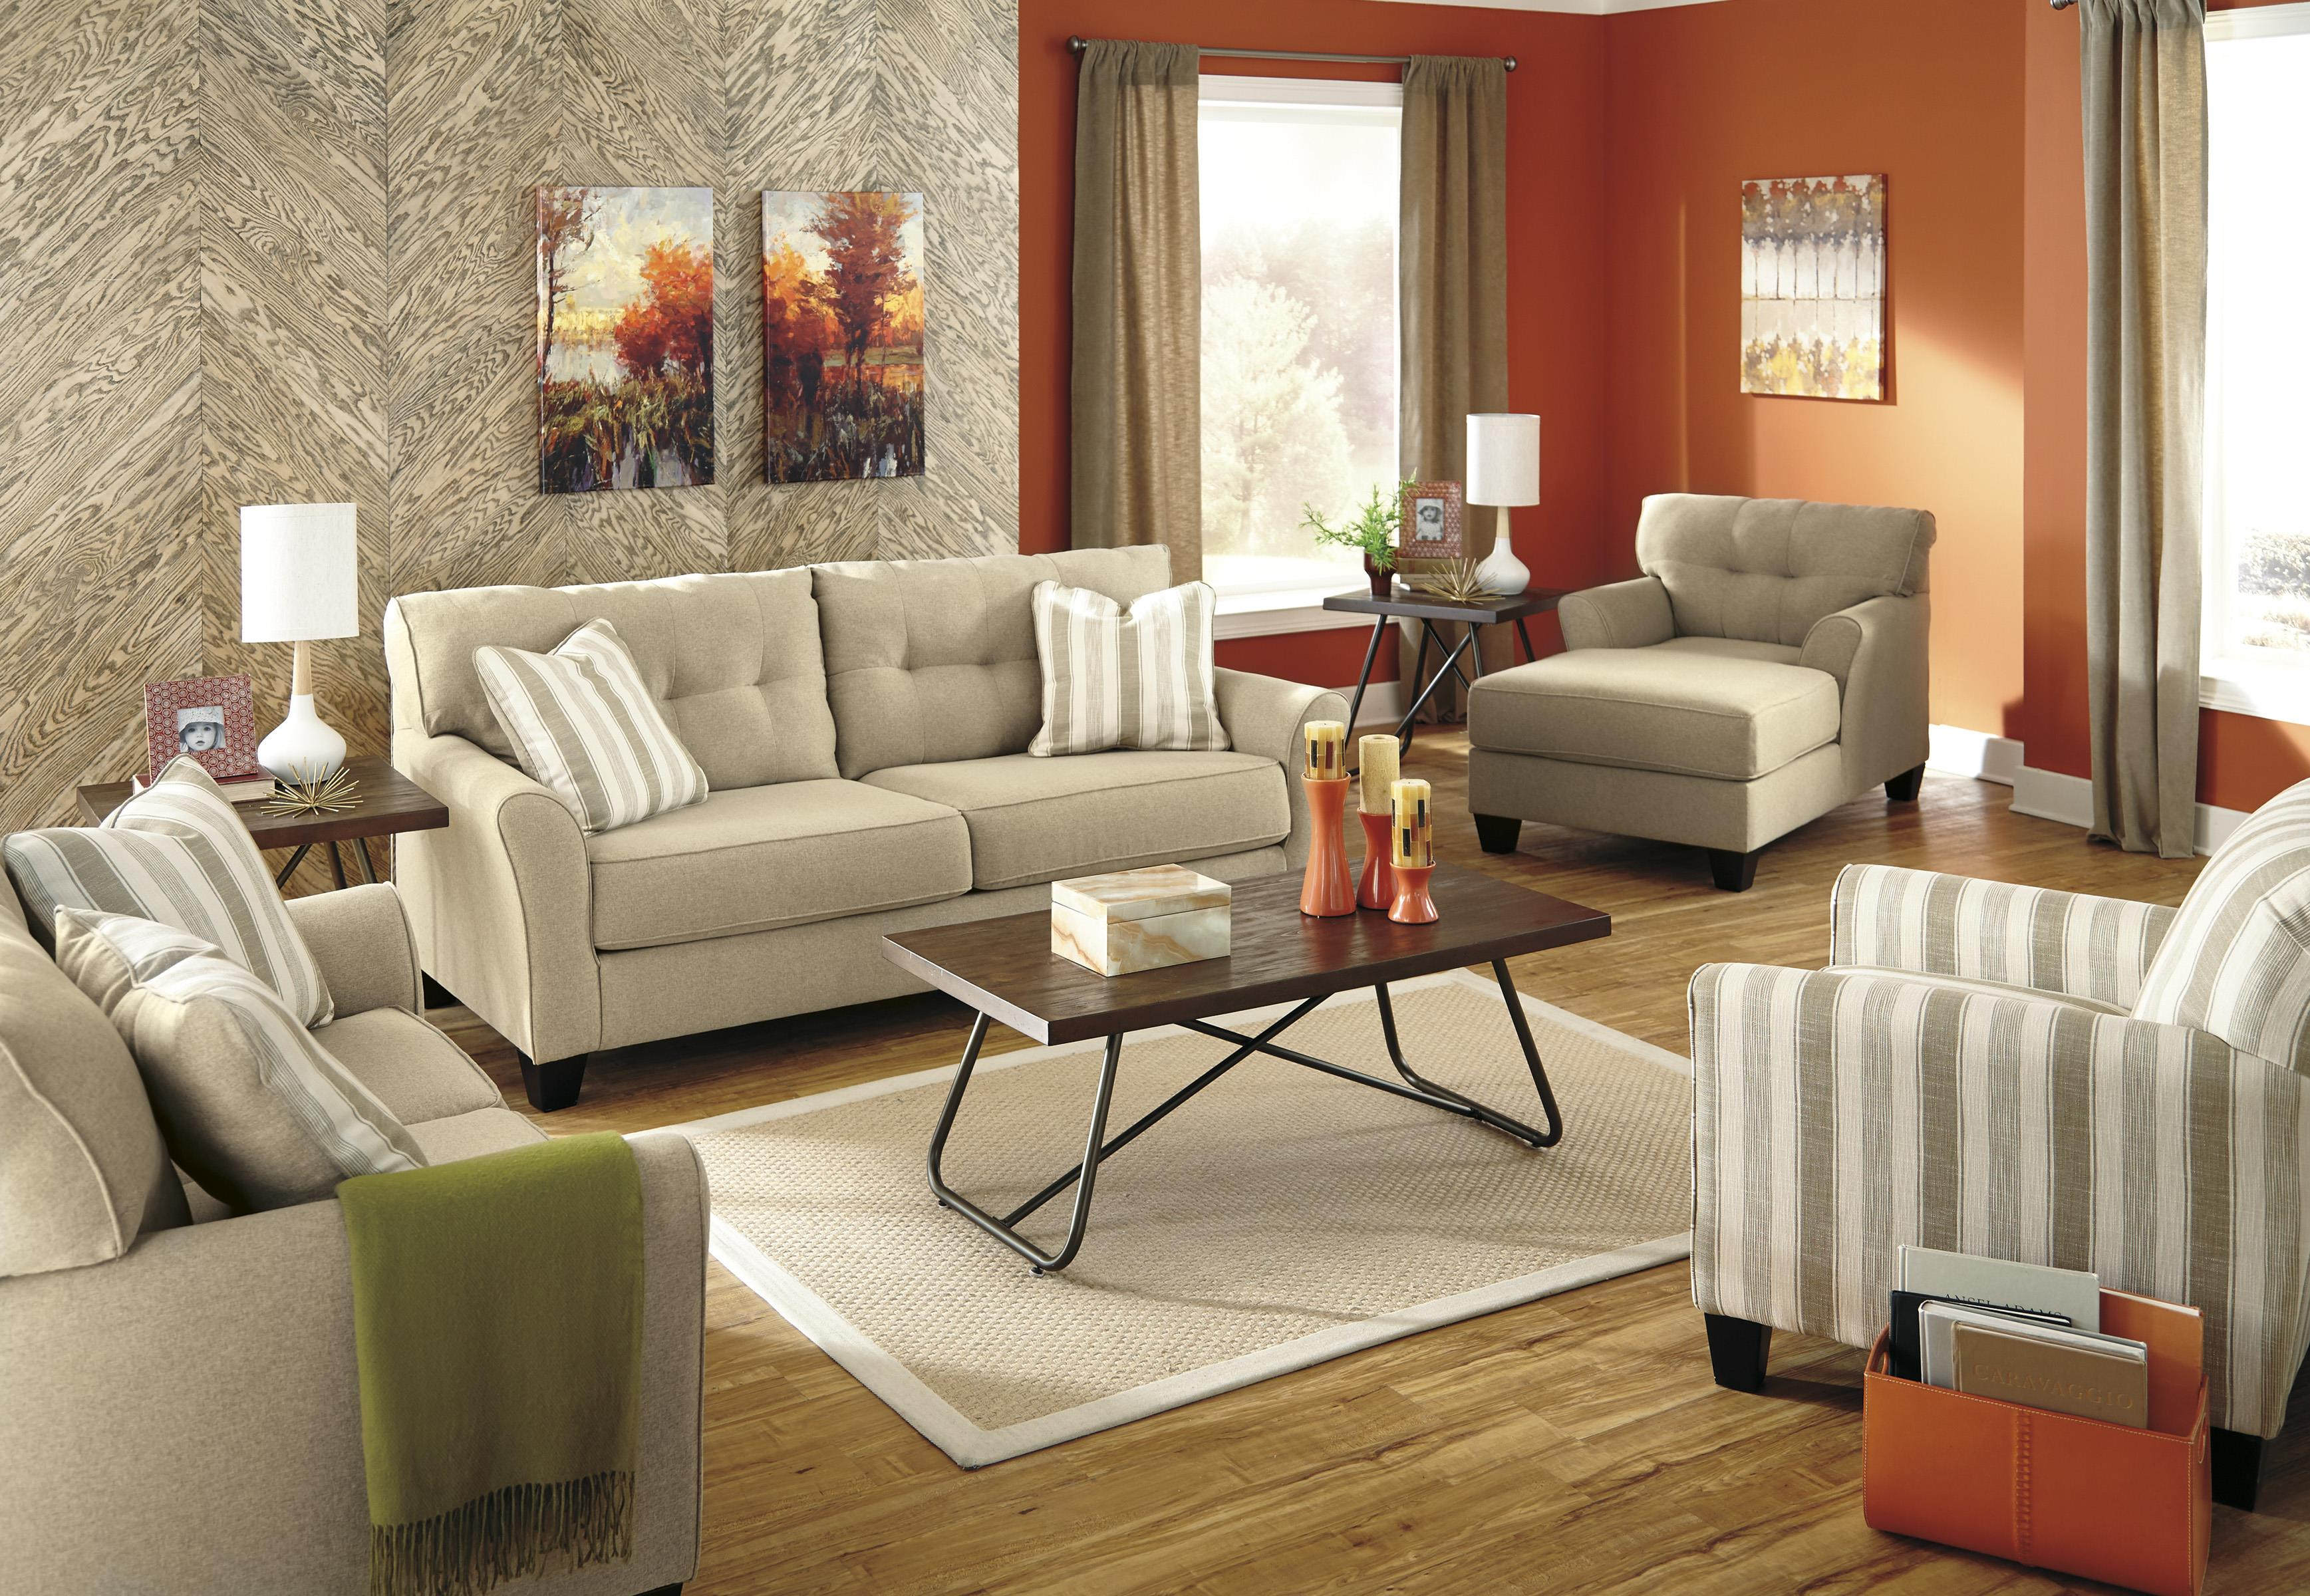 Benchcraft Laryn Contemporary Sofa in Khaki Fabric Wayside